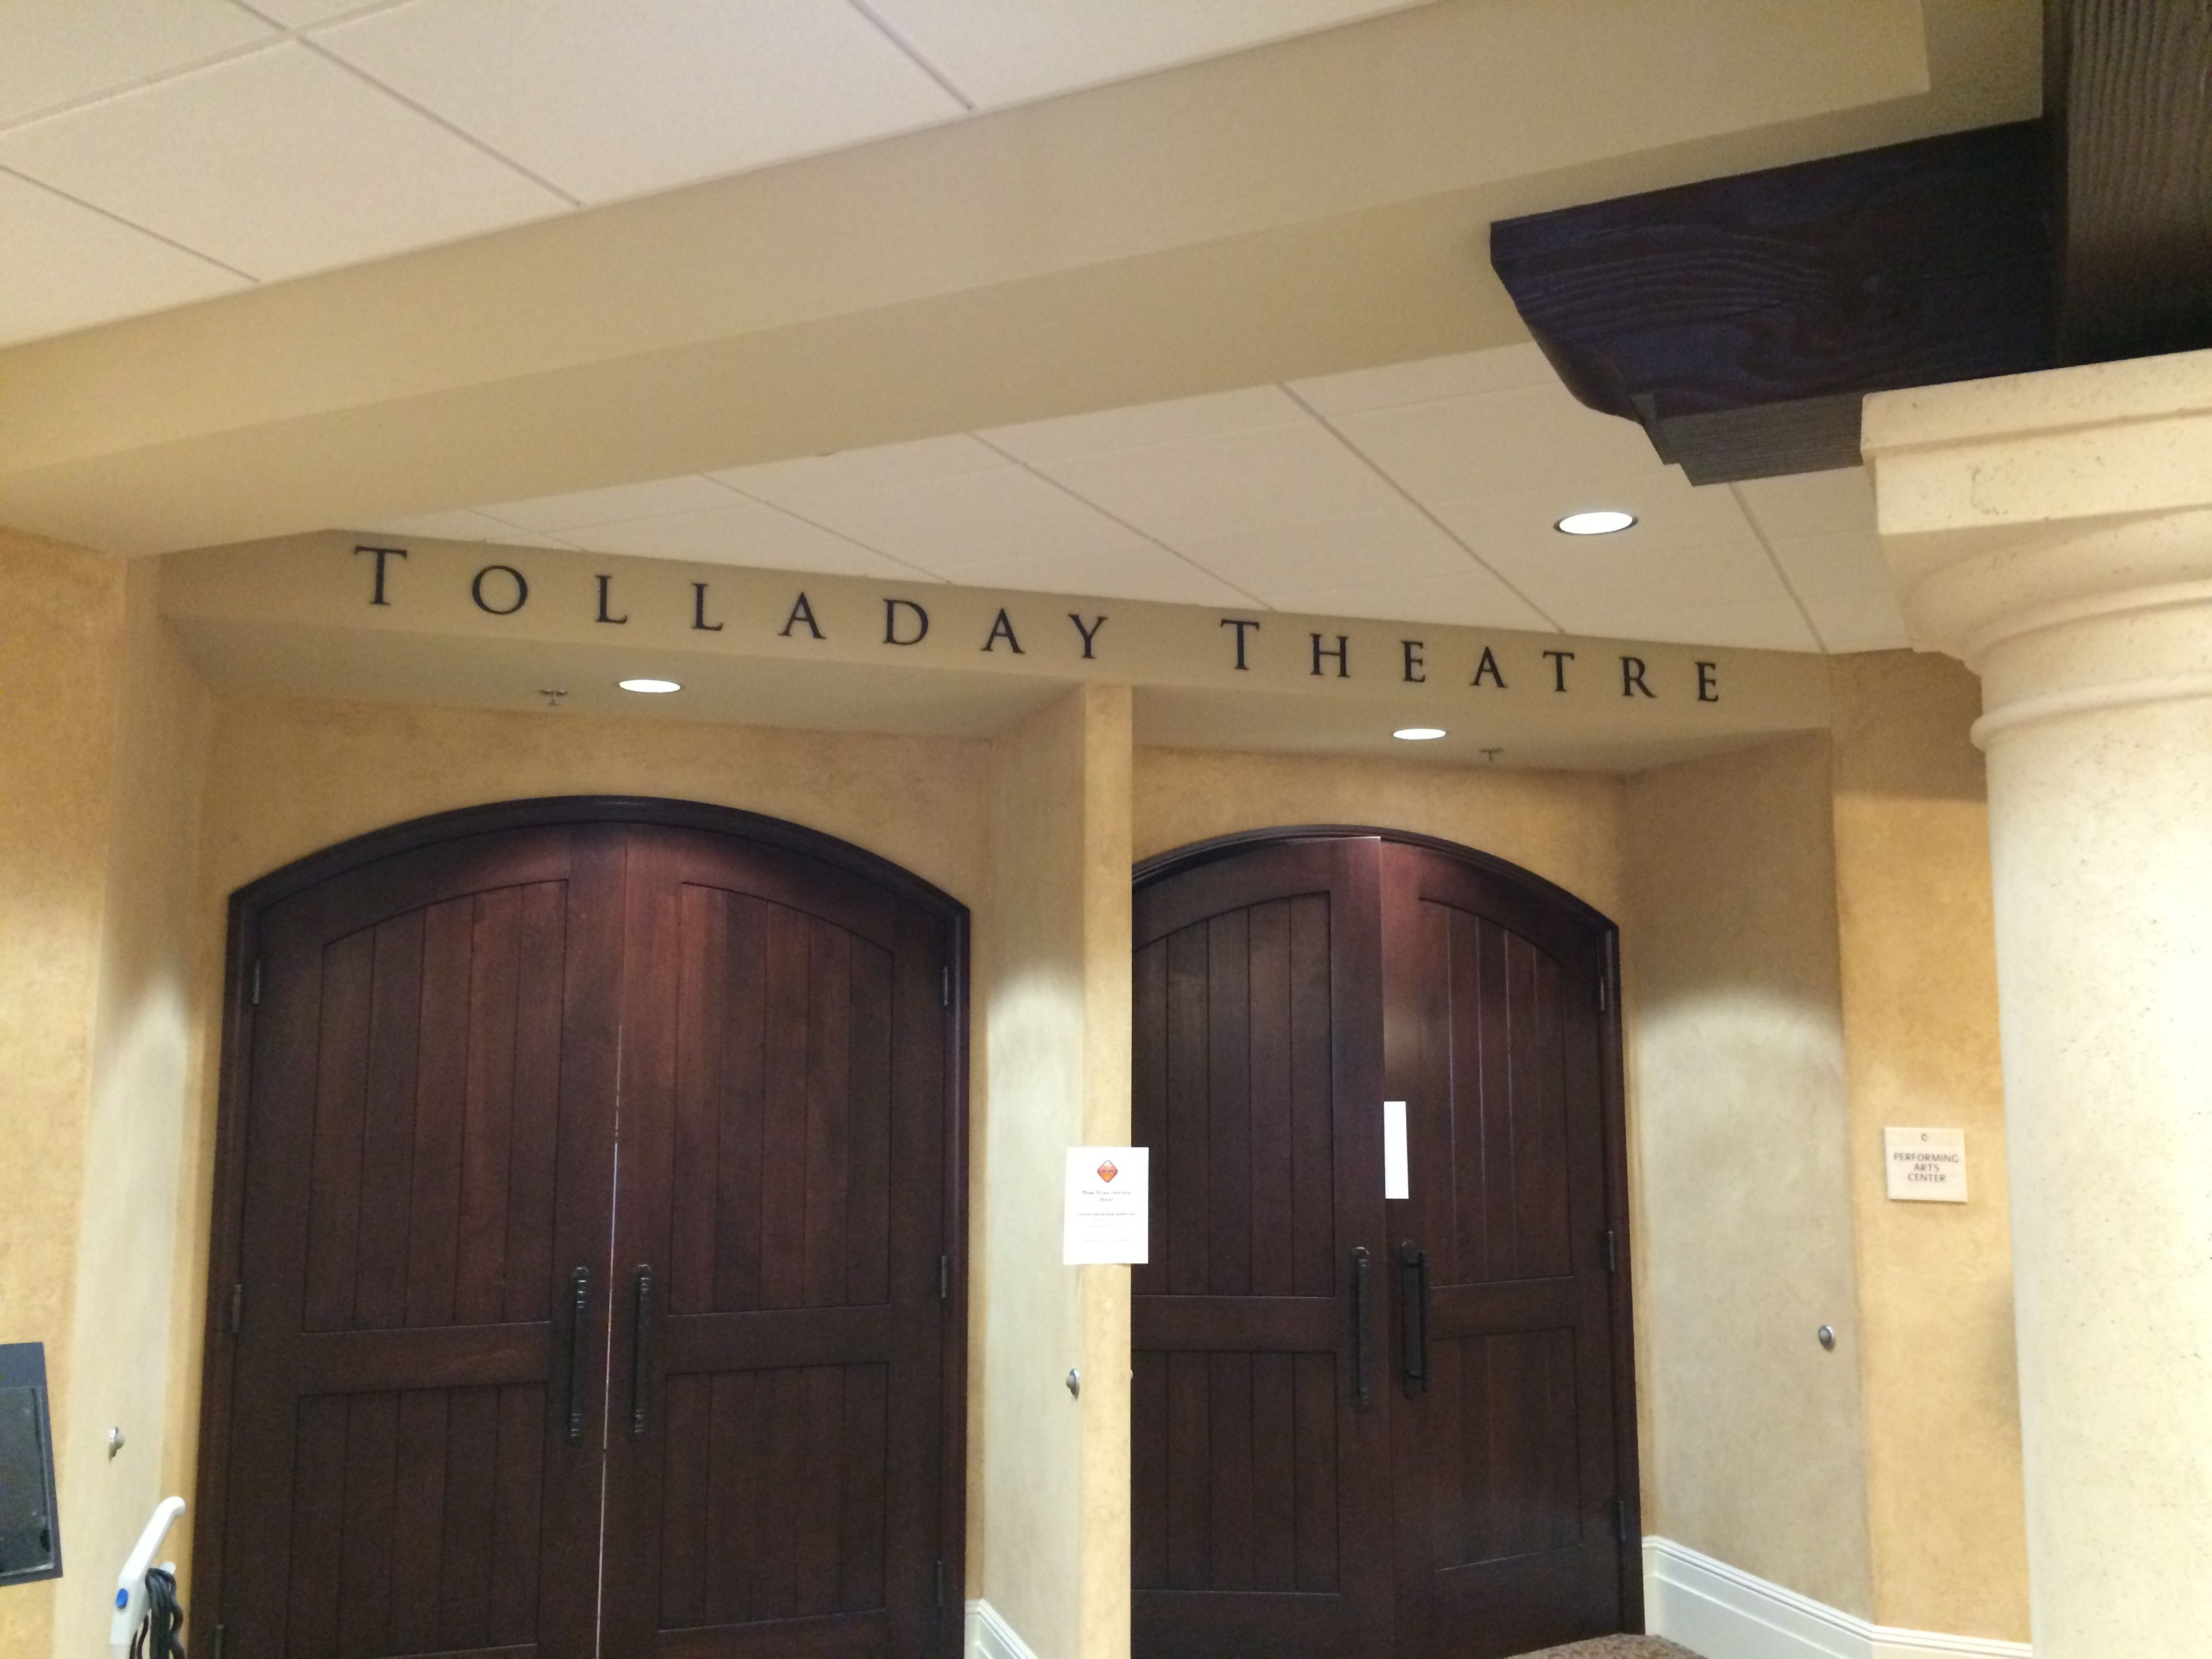 Tolladay Theatre